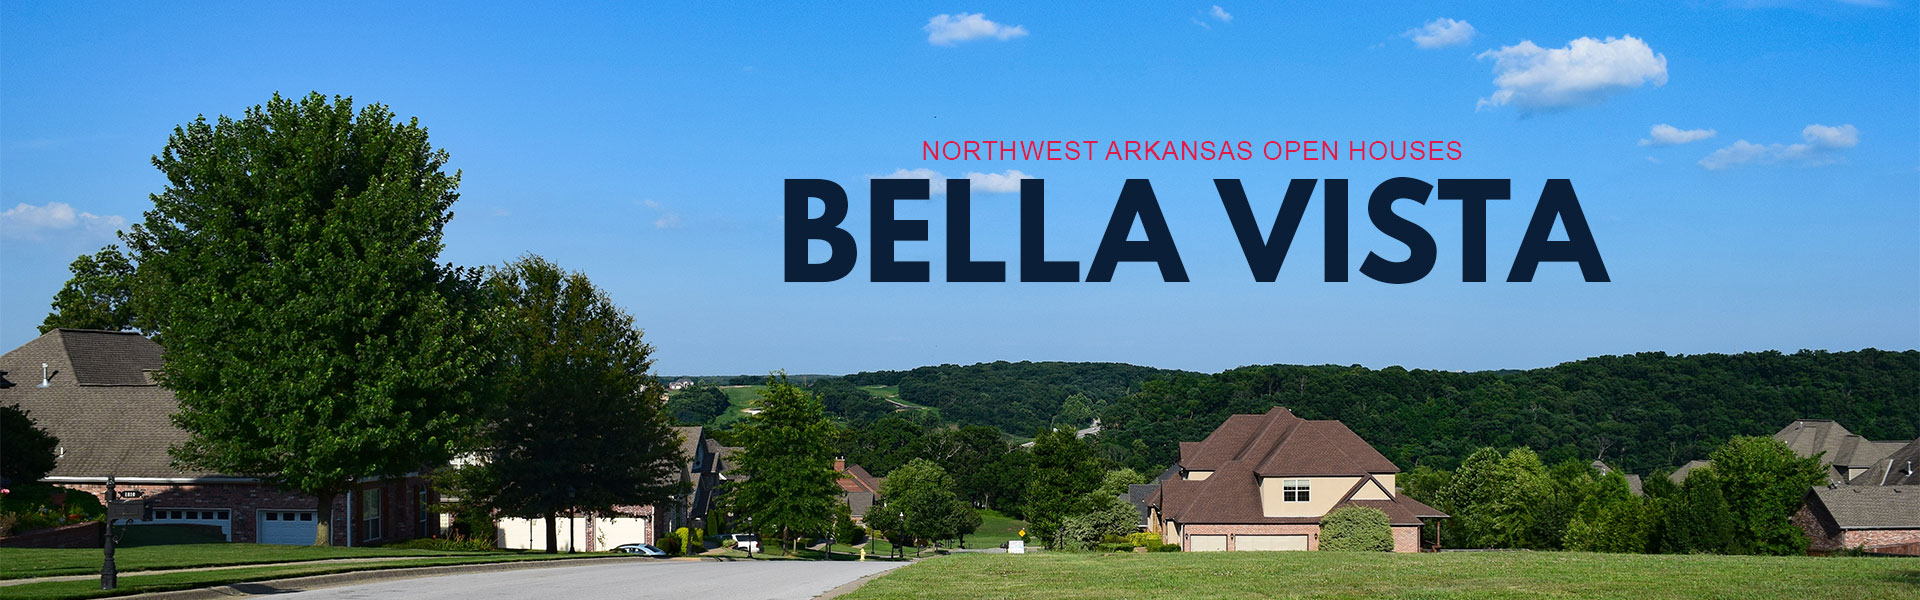 Bella Vista Arkansas Open Houses